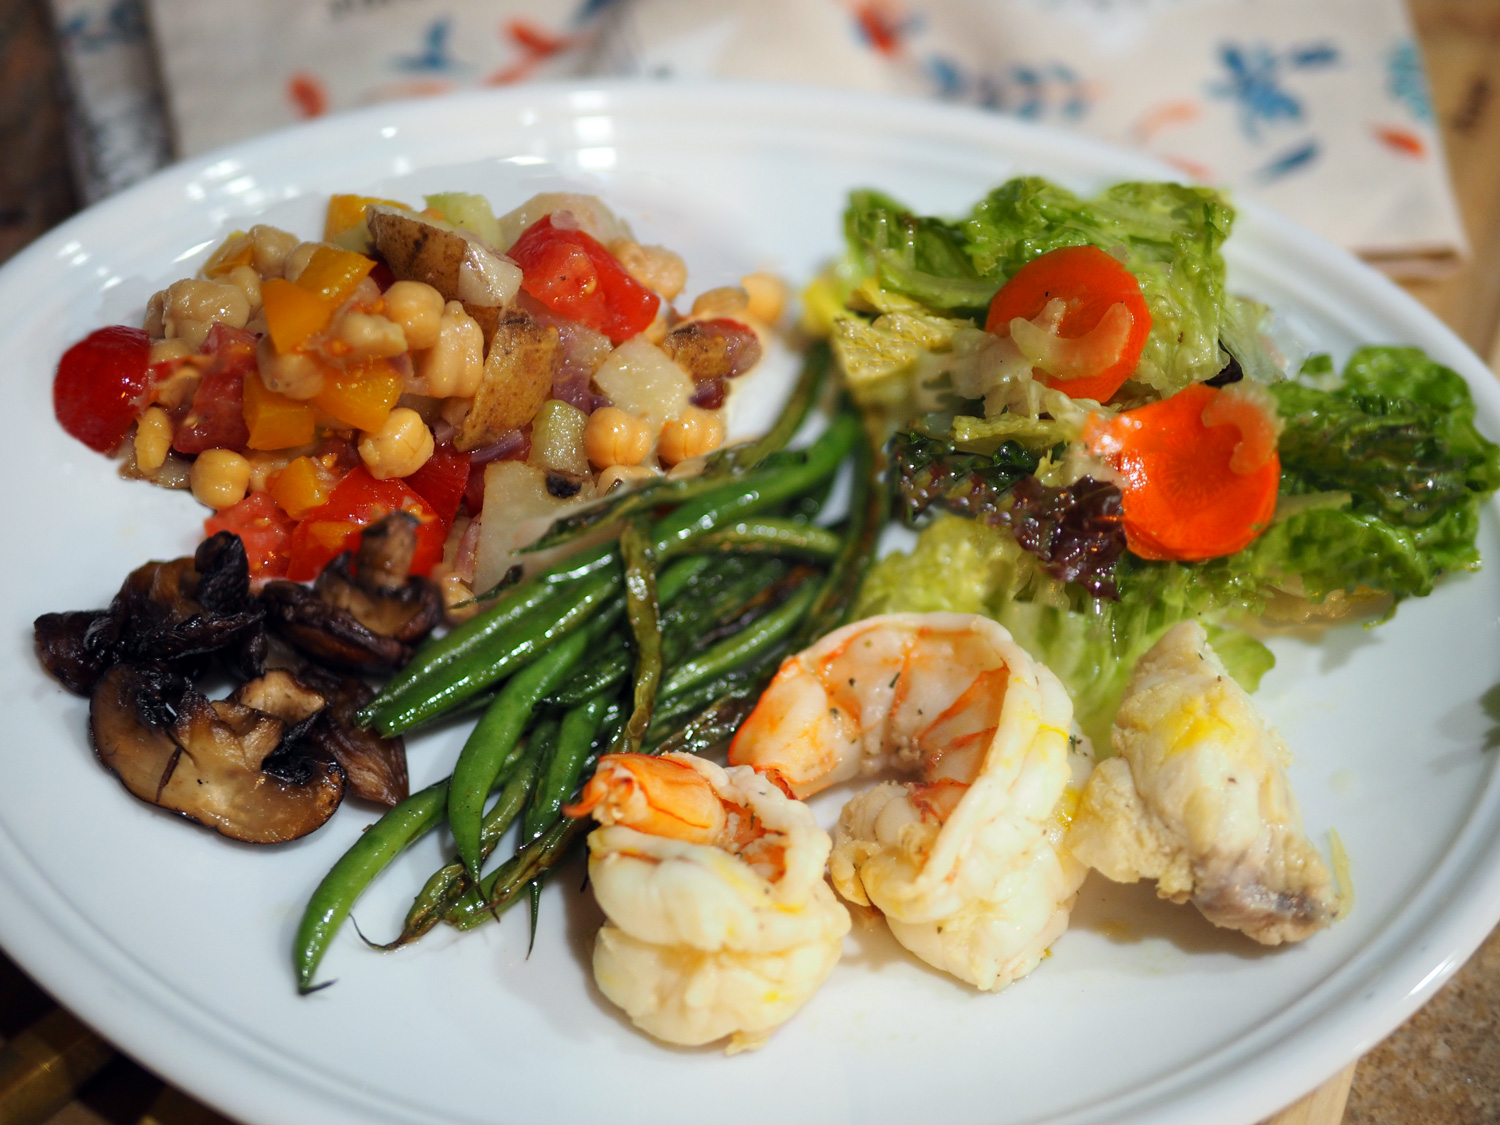 Simple green salad with carrots/red onion, sautéed Haricot Vert, sautéed Cremini mushrooms, Shrimp & Monkfish in a saffron broth and our star potato/chick pea salad.